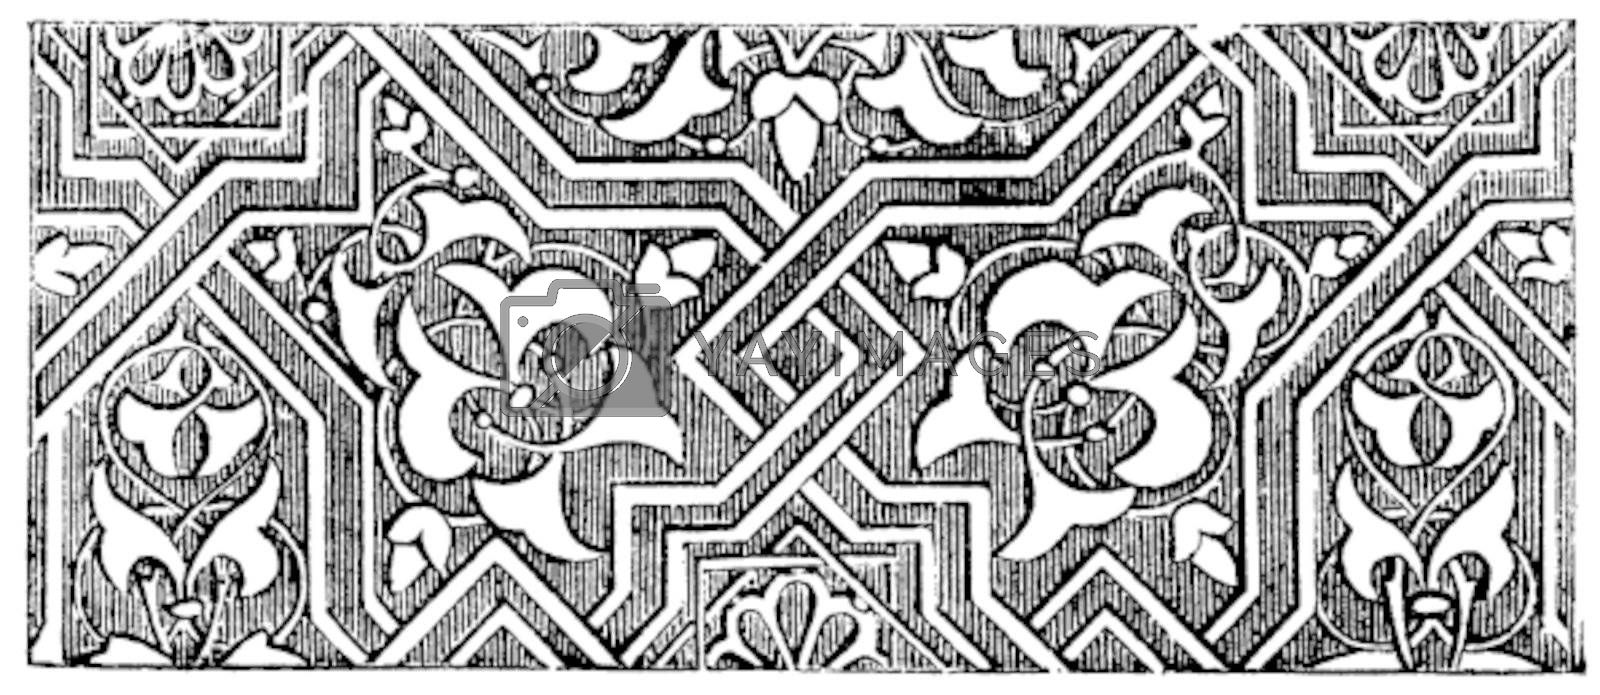 Islamic art or Arabesque. Vintage engraving. Old engraved illustration of Islamic art used consistently from about the 9th century onwards.